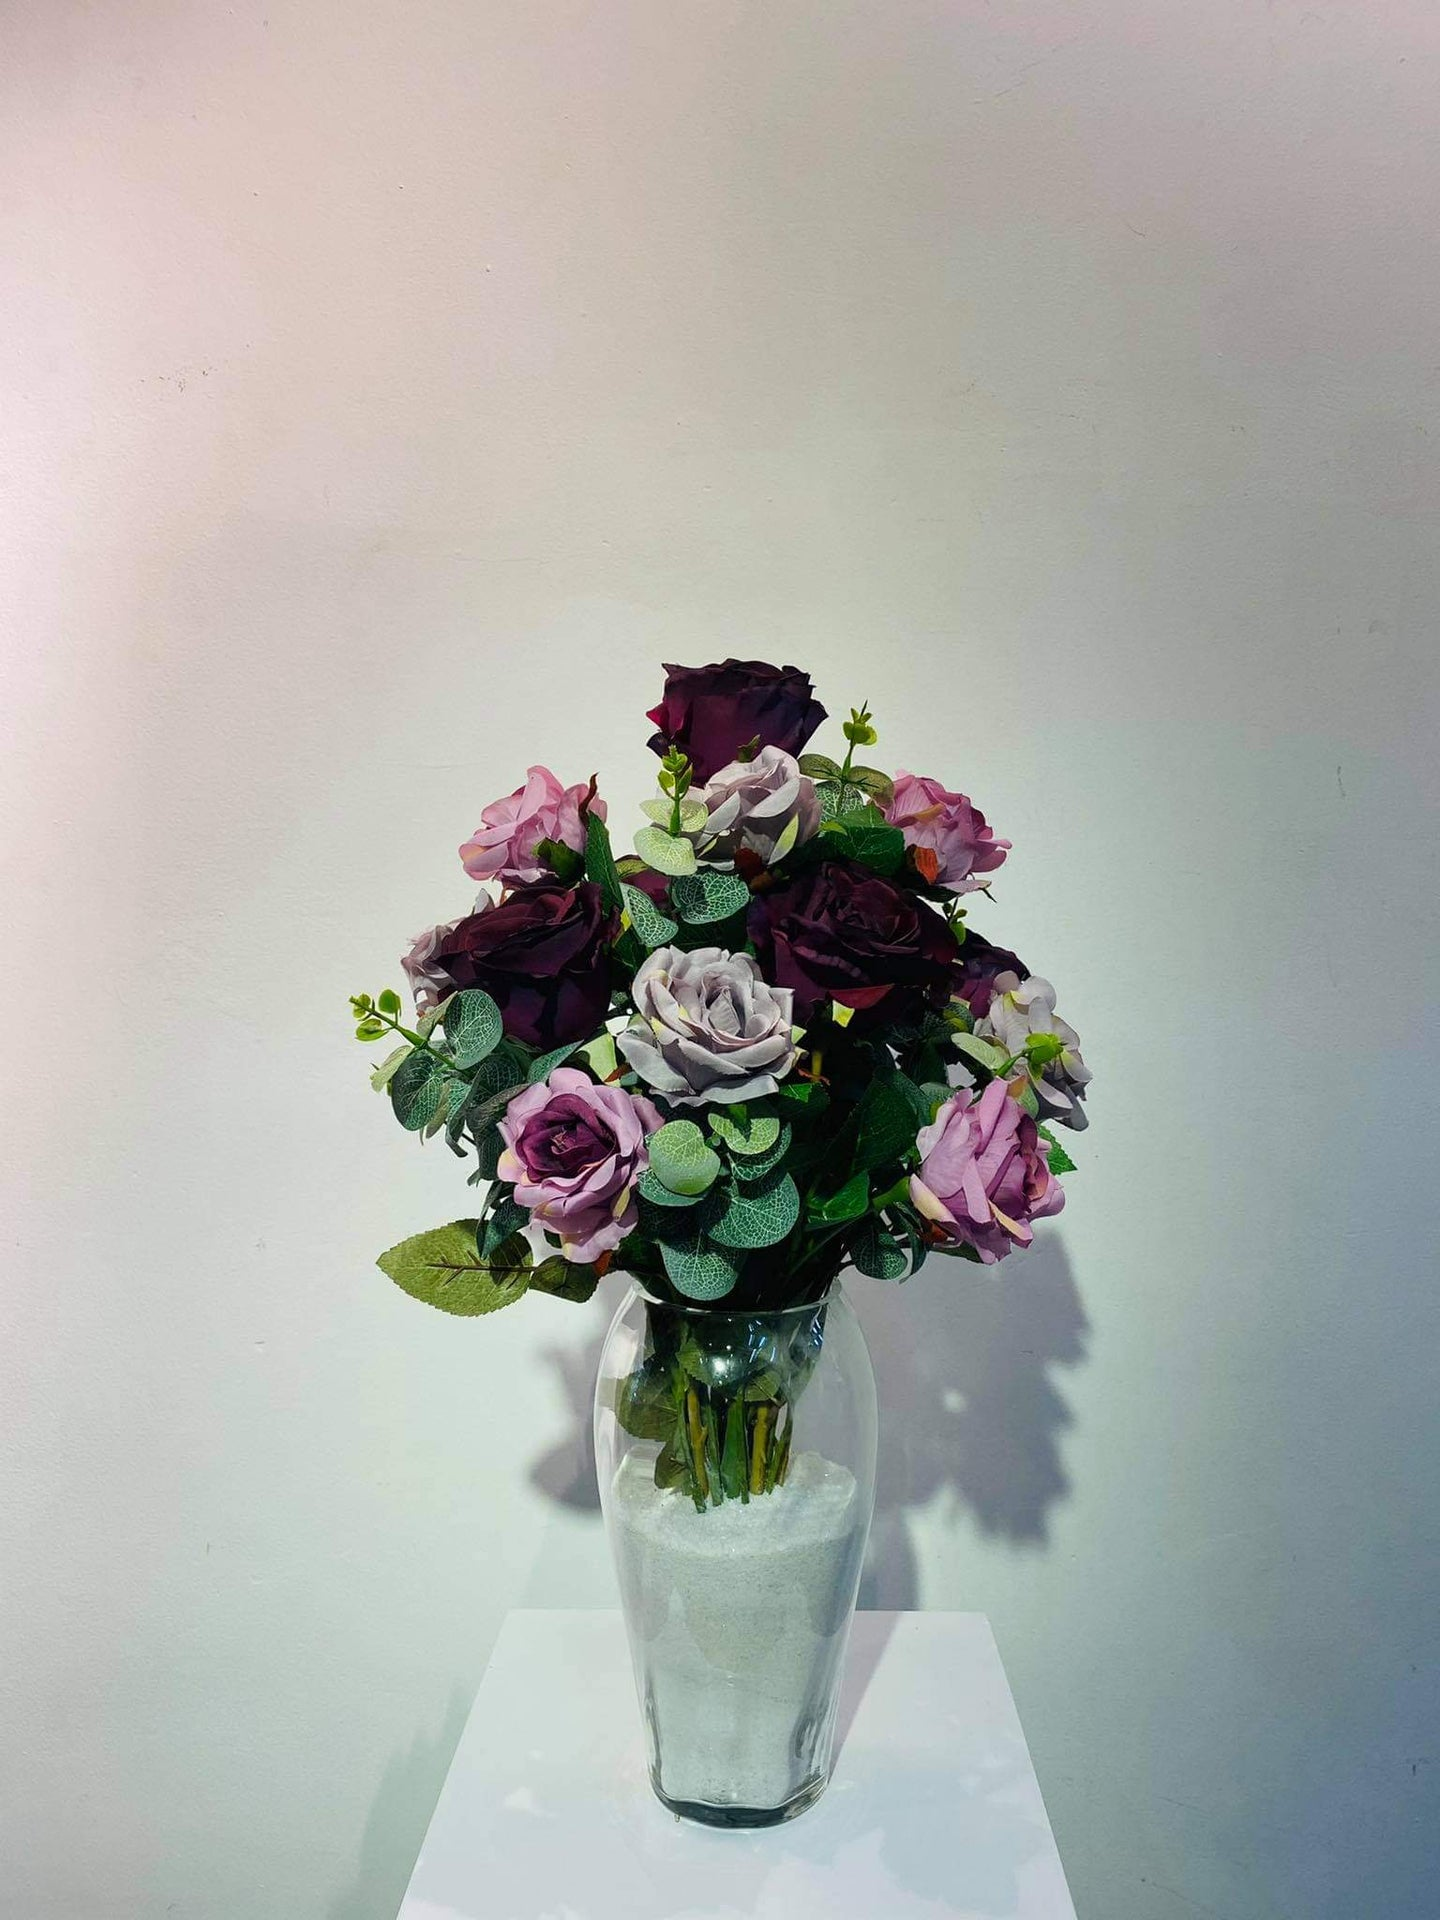 Artificial Floral Arrangement (h:51cm w:32cm)